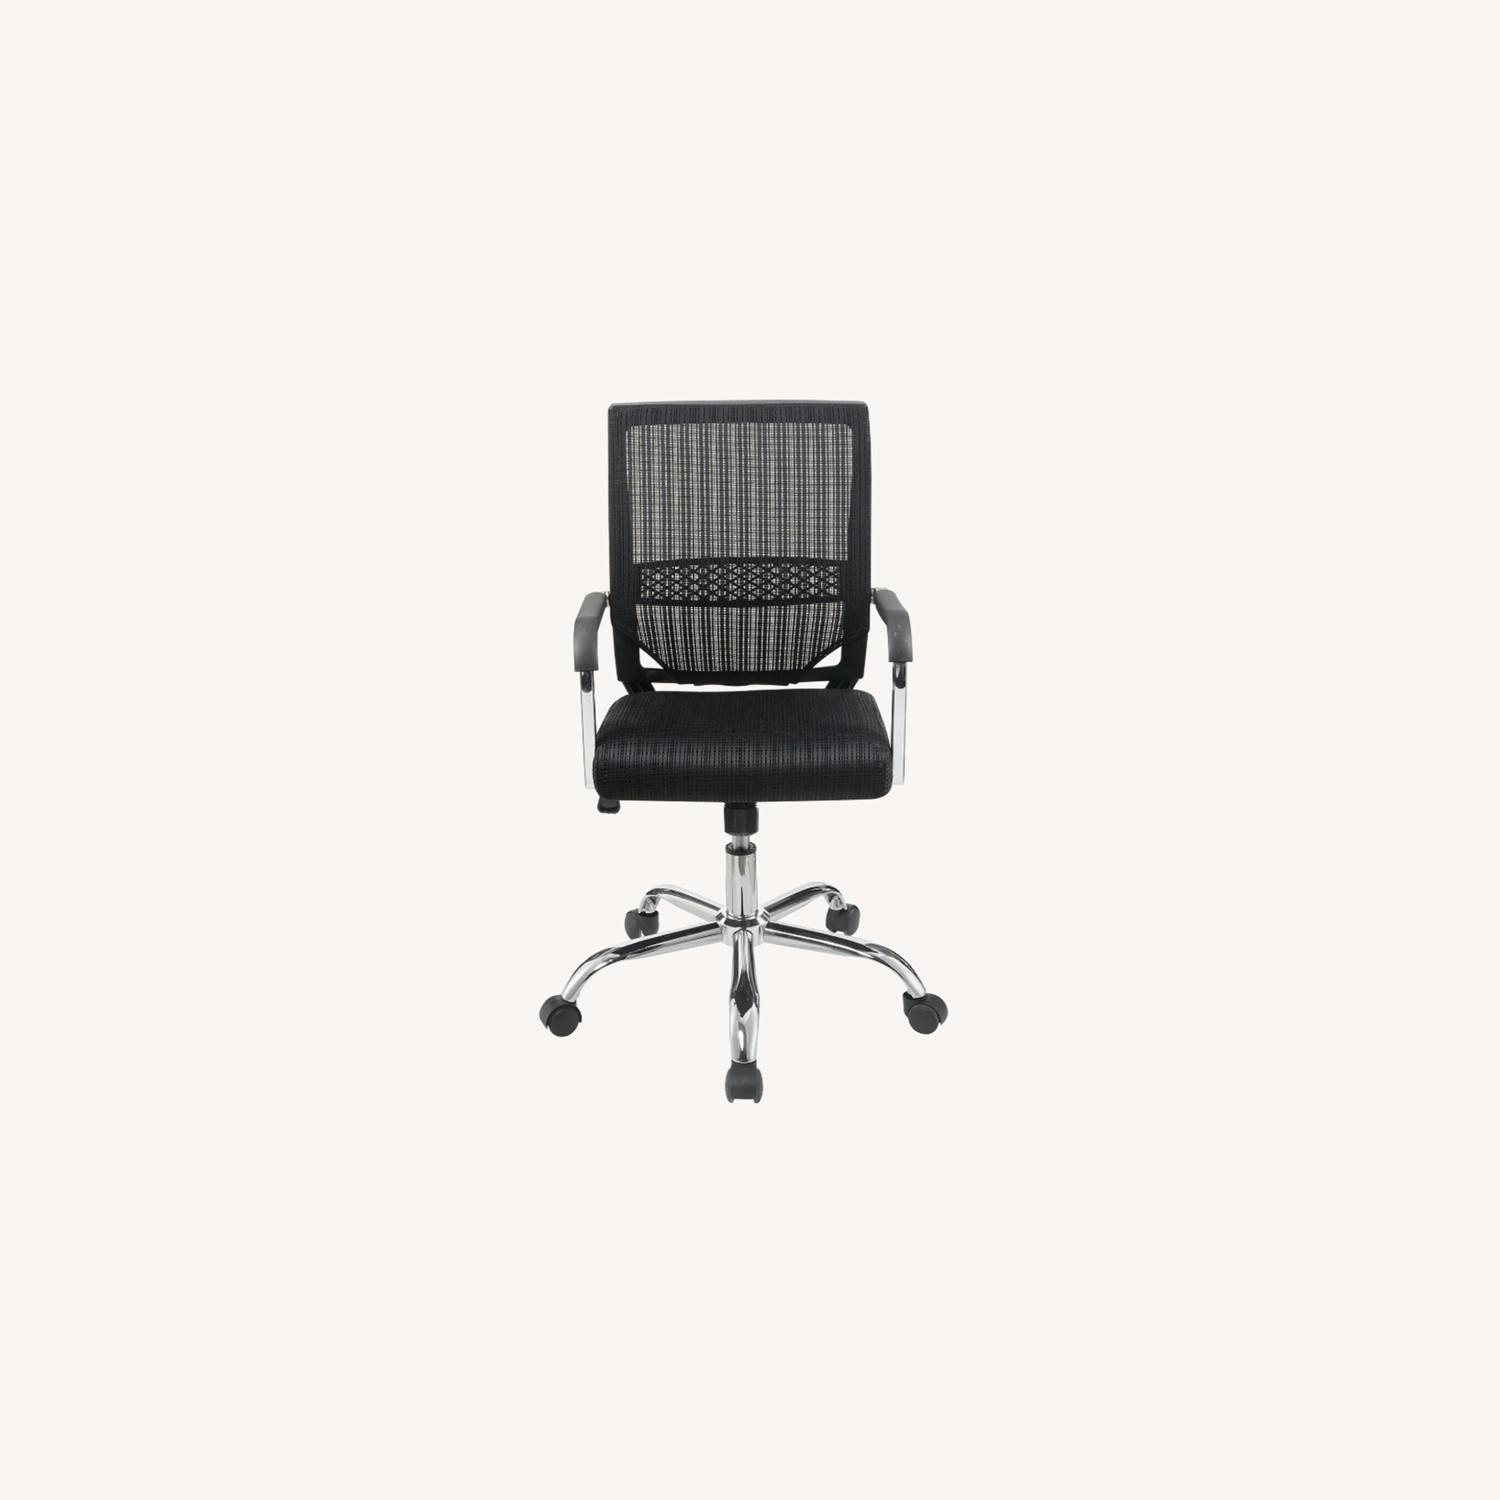 Office Chair In Black Fabric Finish W/ Mesh Back - image-7